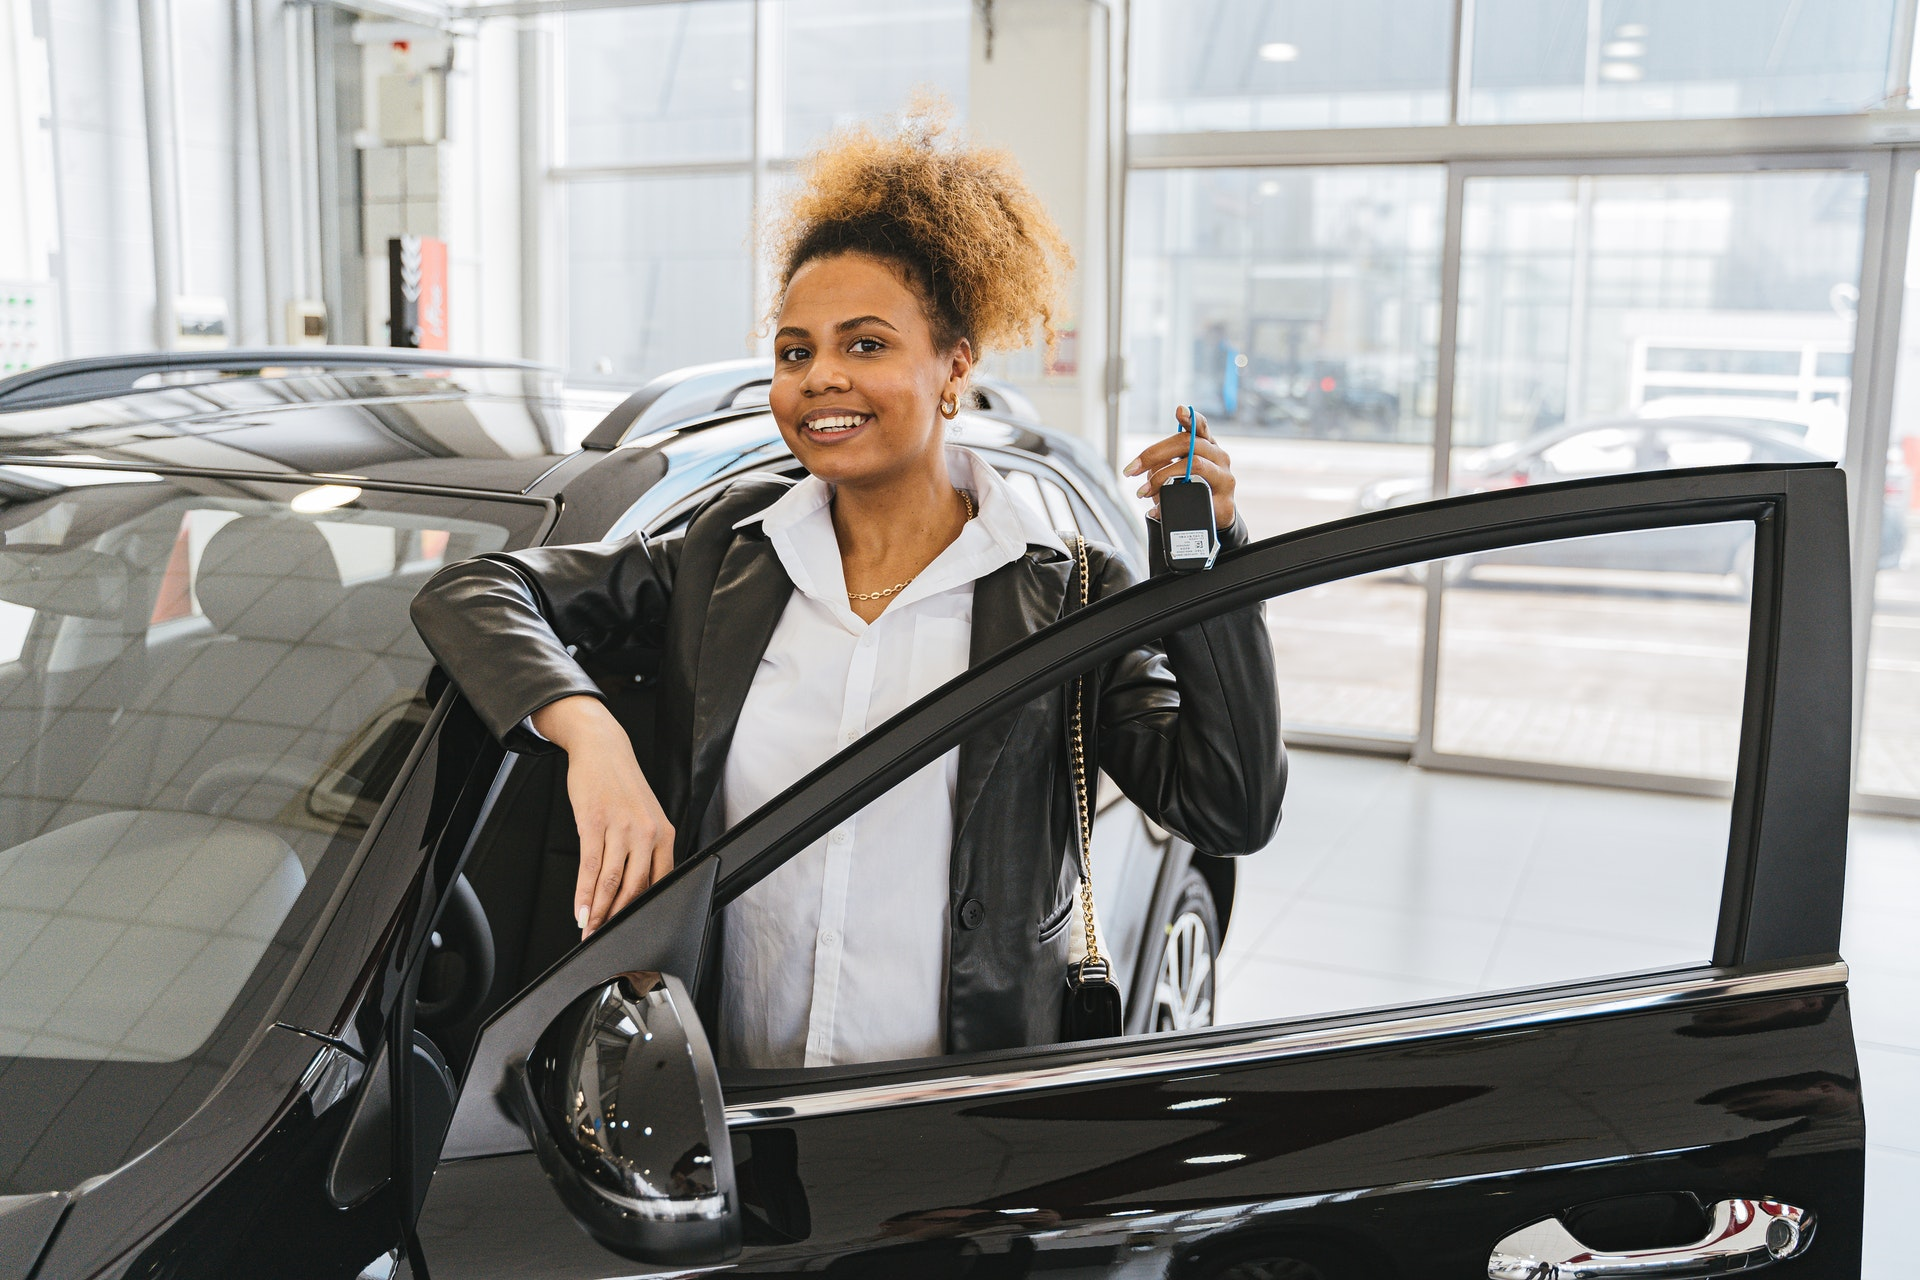 A Look at Considerations to Make When Buying a New Car